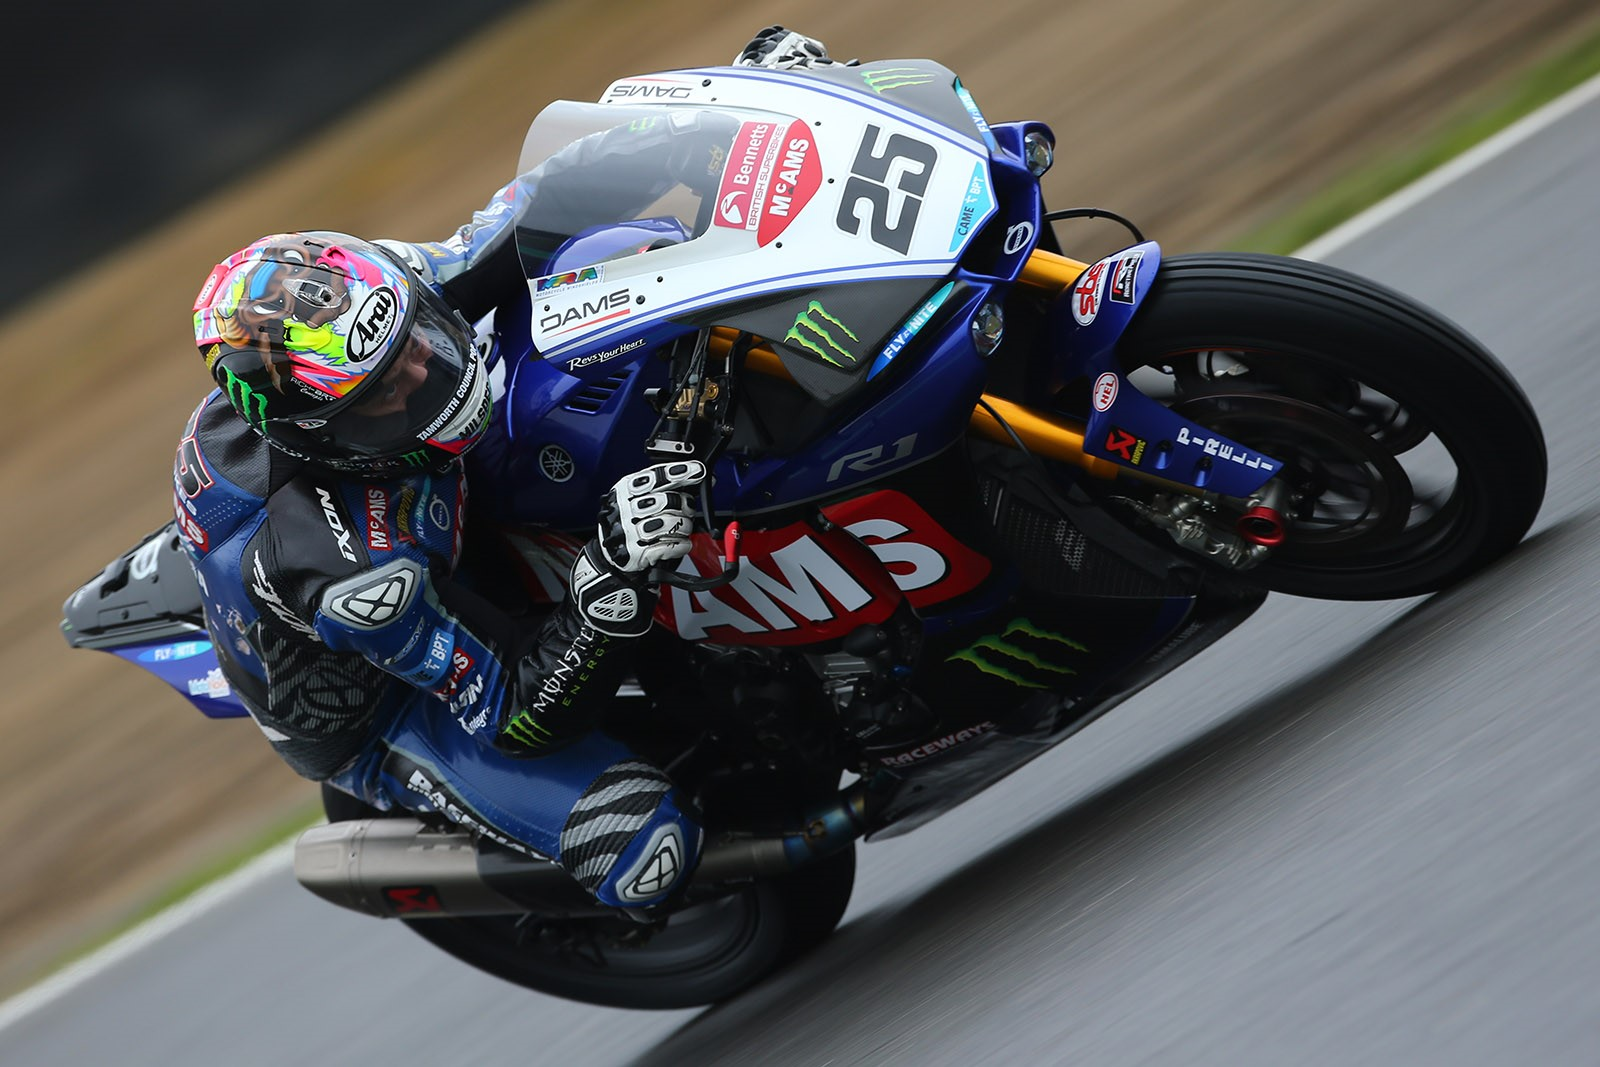 Josh Brookes will be hoping for better performances going forward credit Double Red